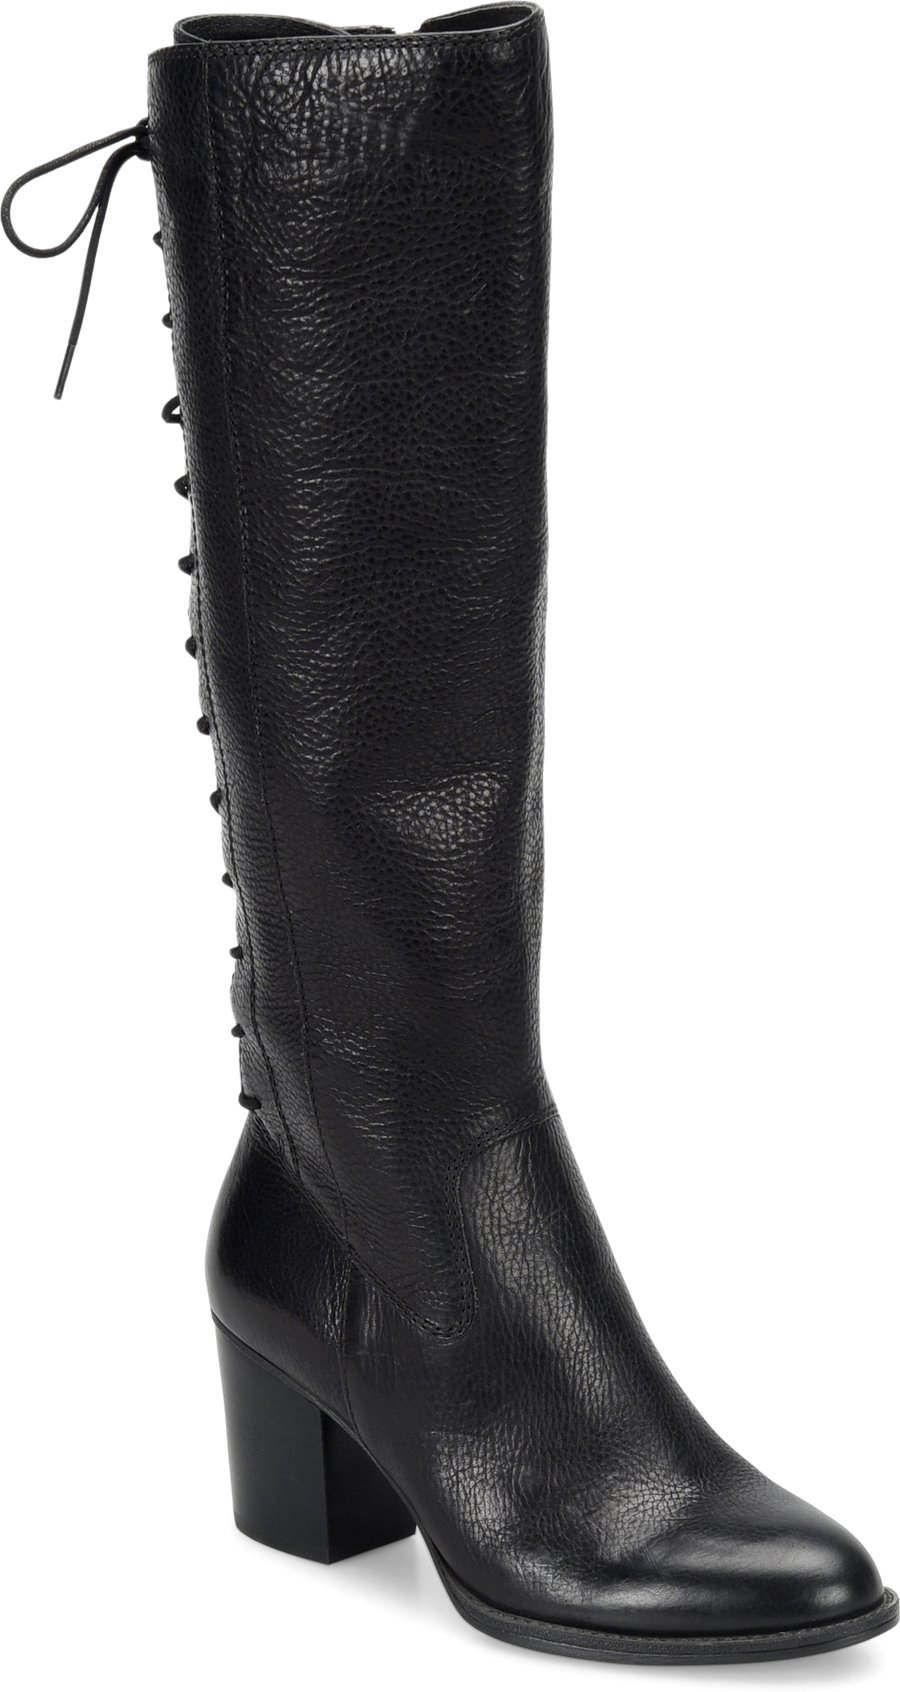 Sofft Wheaton In Black Sofft Womens Boots On Shoeline Com